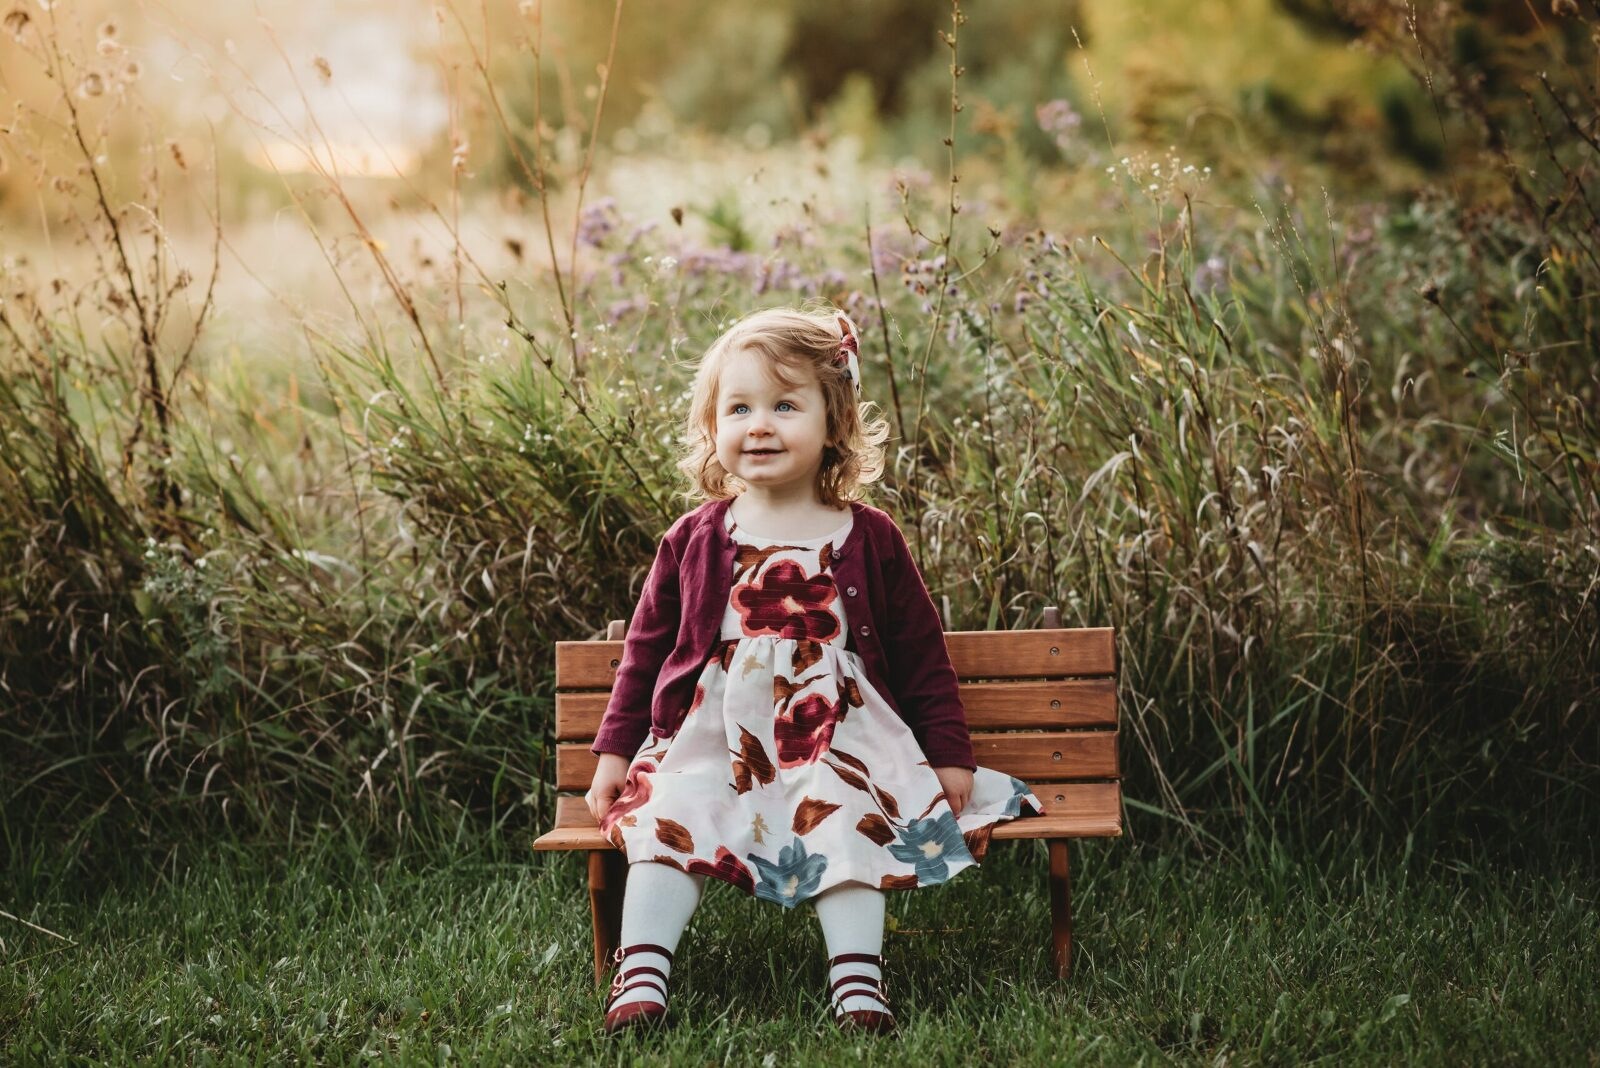 one year old girl on tiny park bench with glowing sunset and grassy field